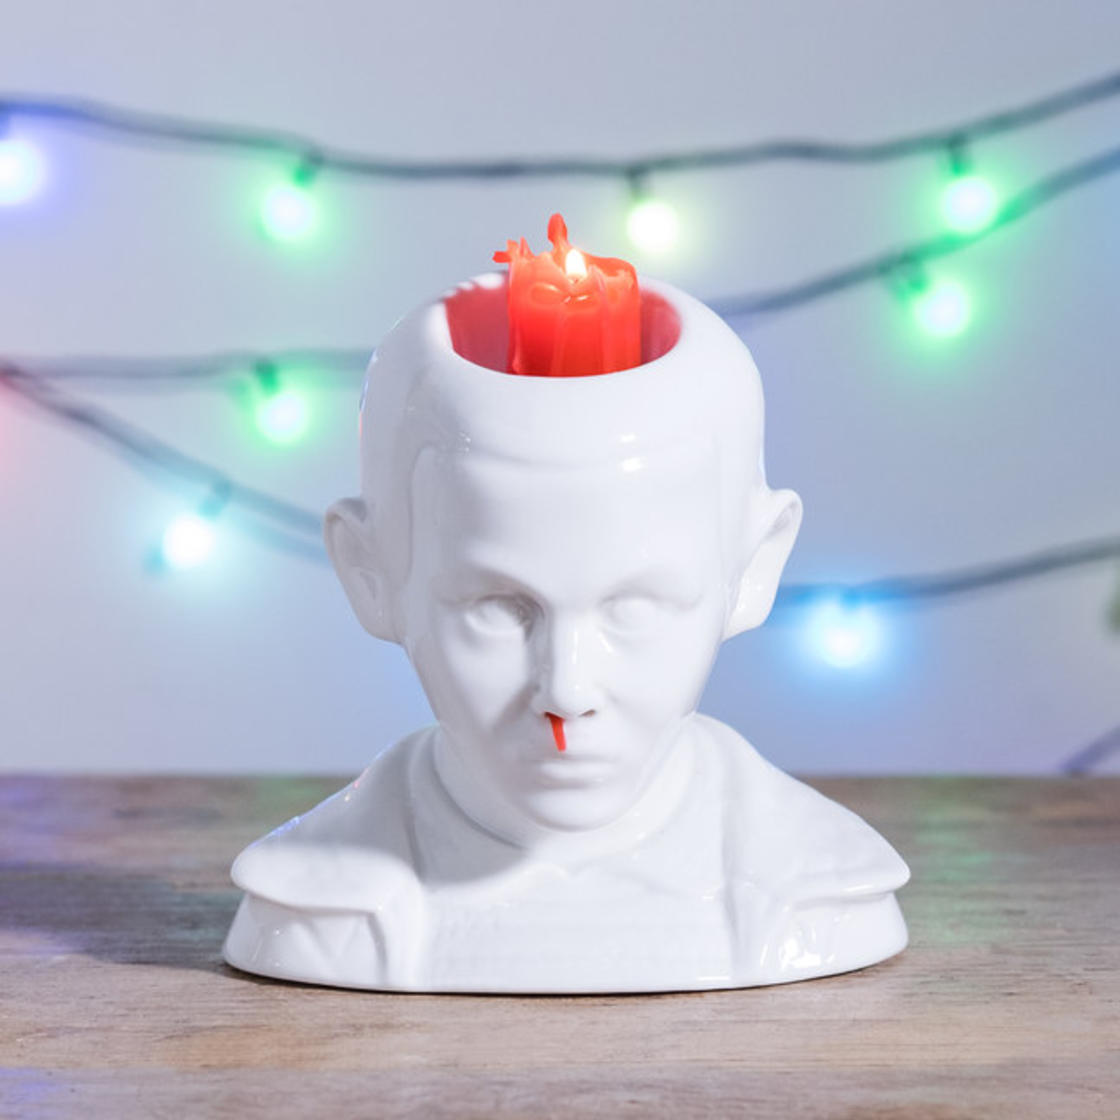 Stranger Things – An amazing Eleven candle that bleeds from the nose